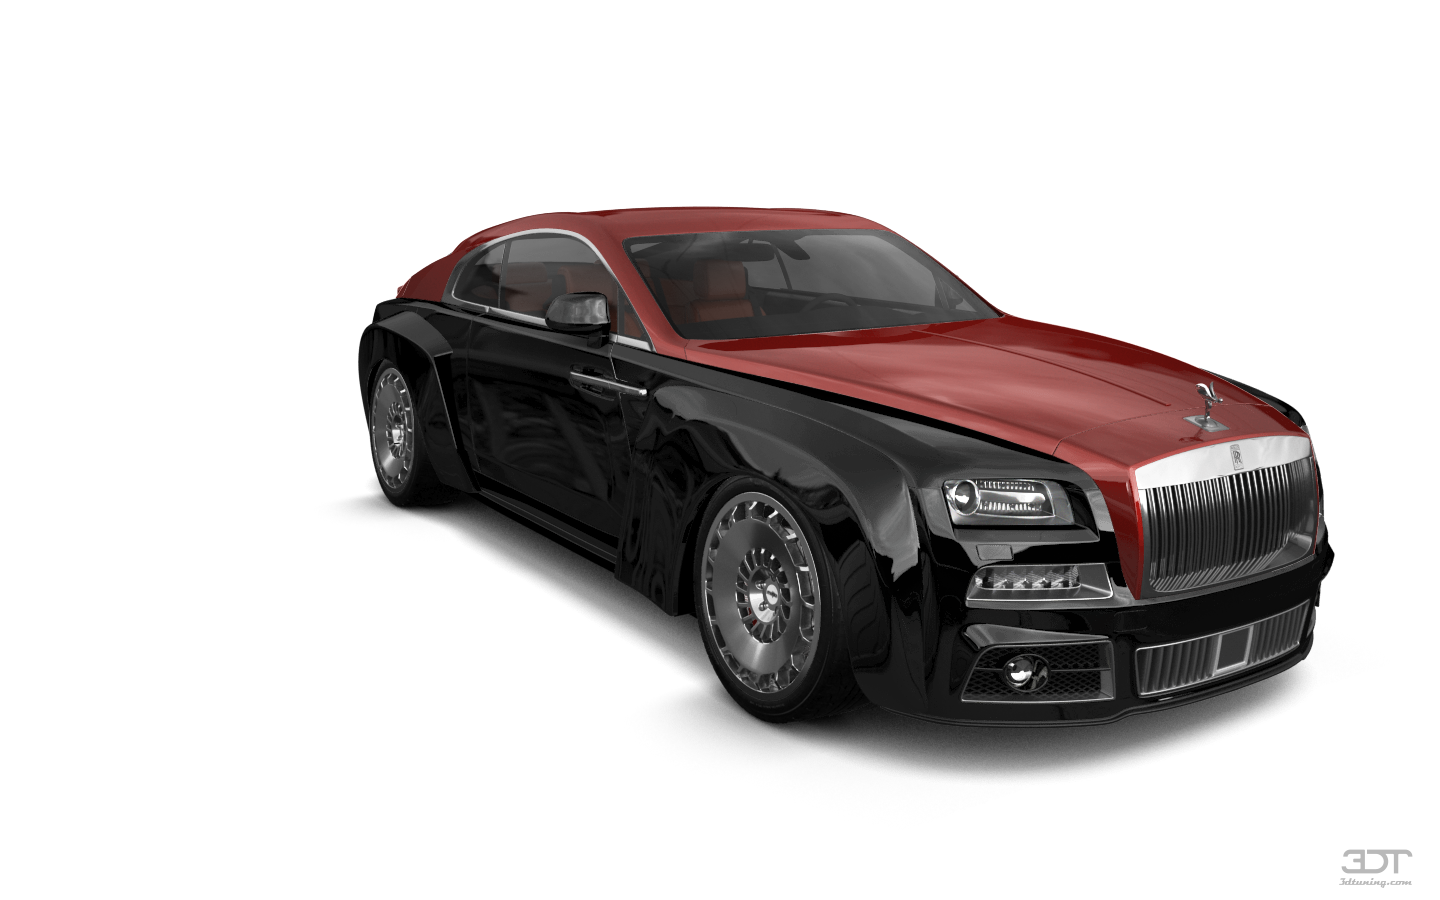 Rolls Royce Wraith 2 Door Coupe 2014 tuning